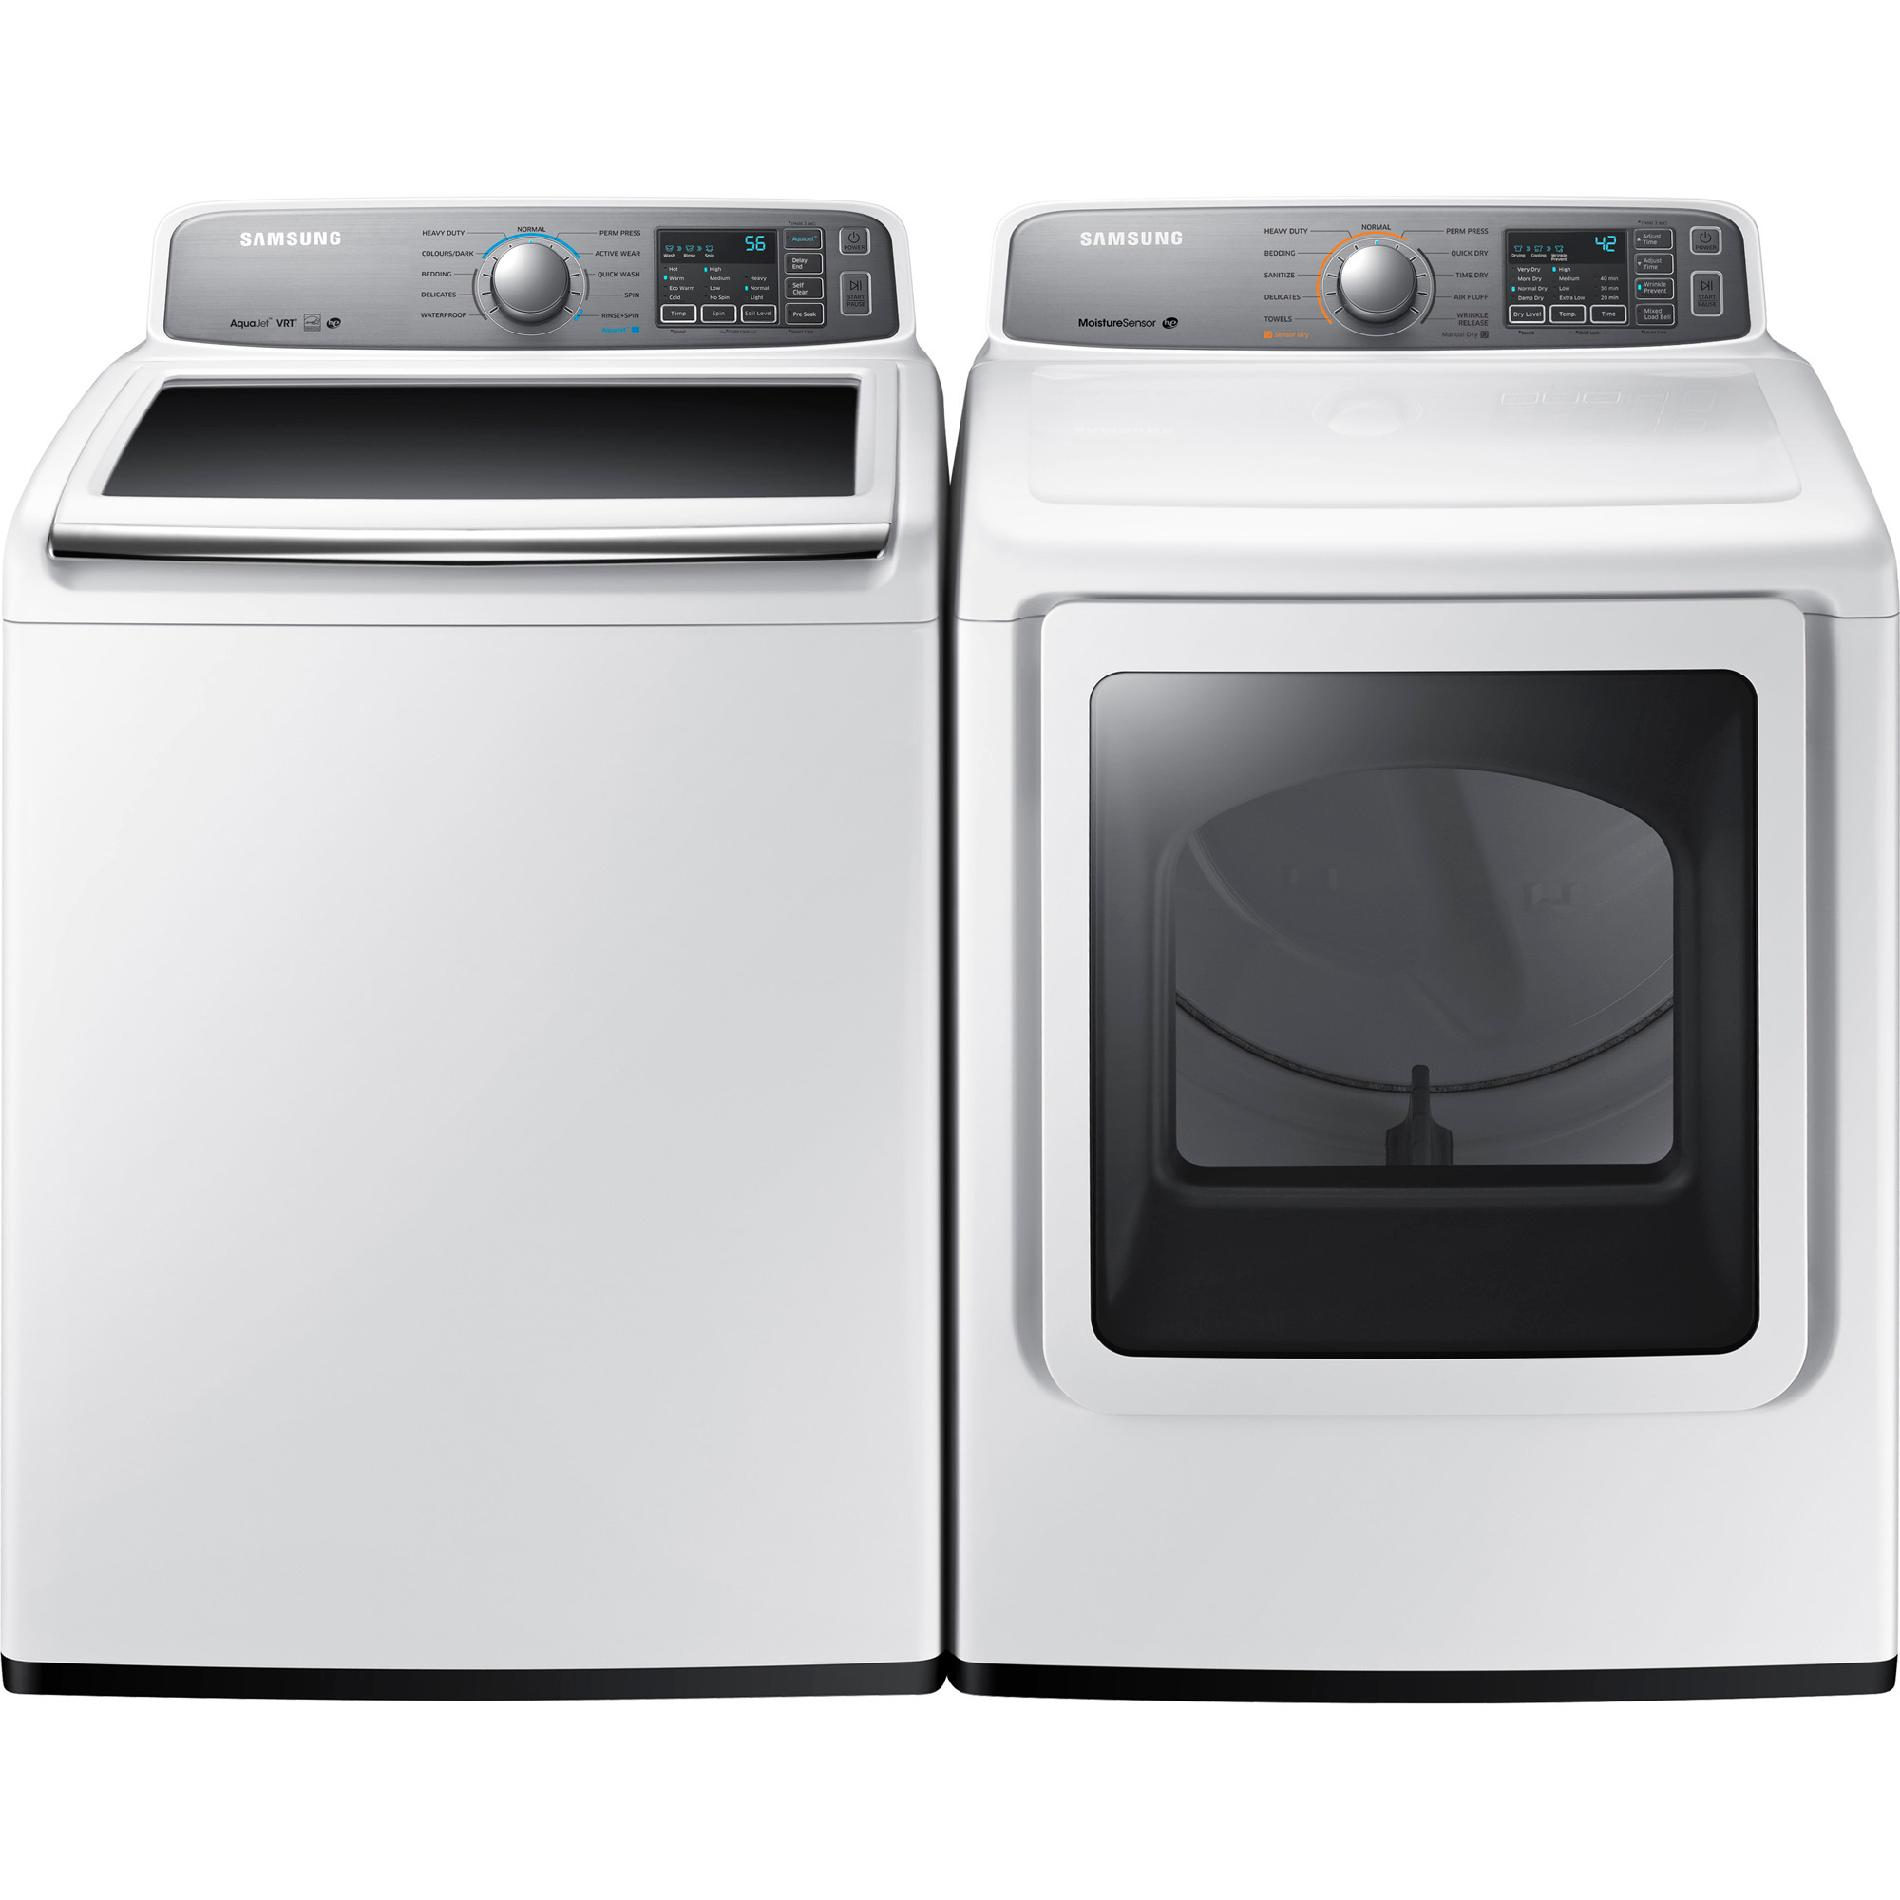 Samsung 4 5 Cu Ft Top Load Washer White Wa45h7200aw